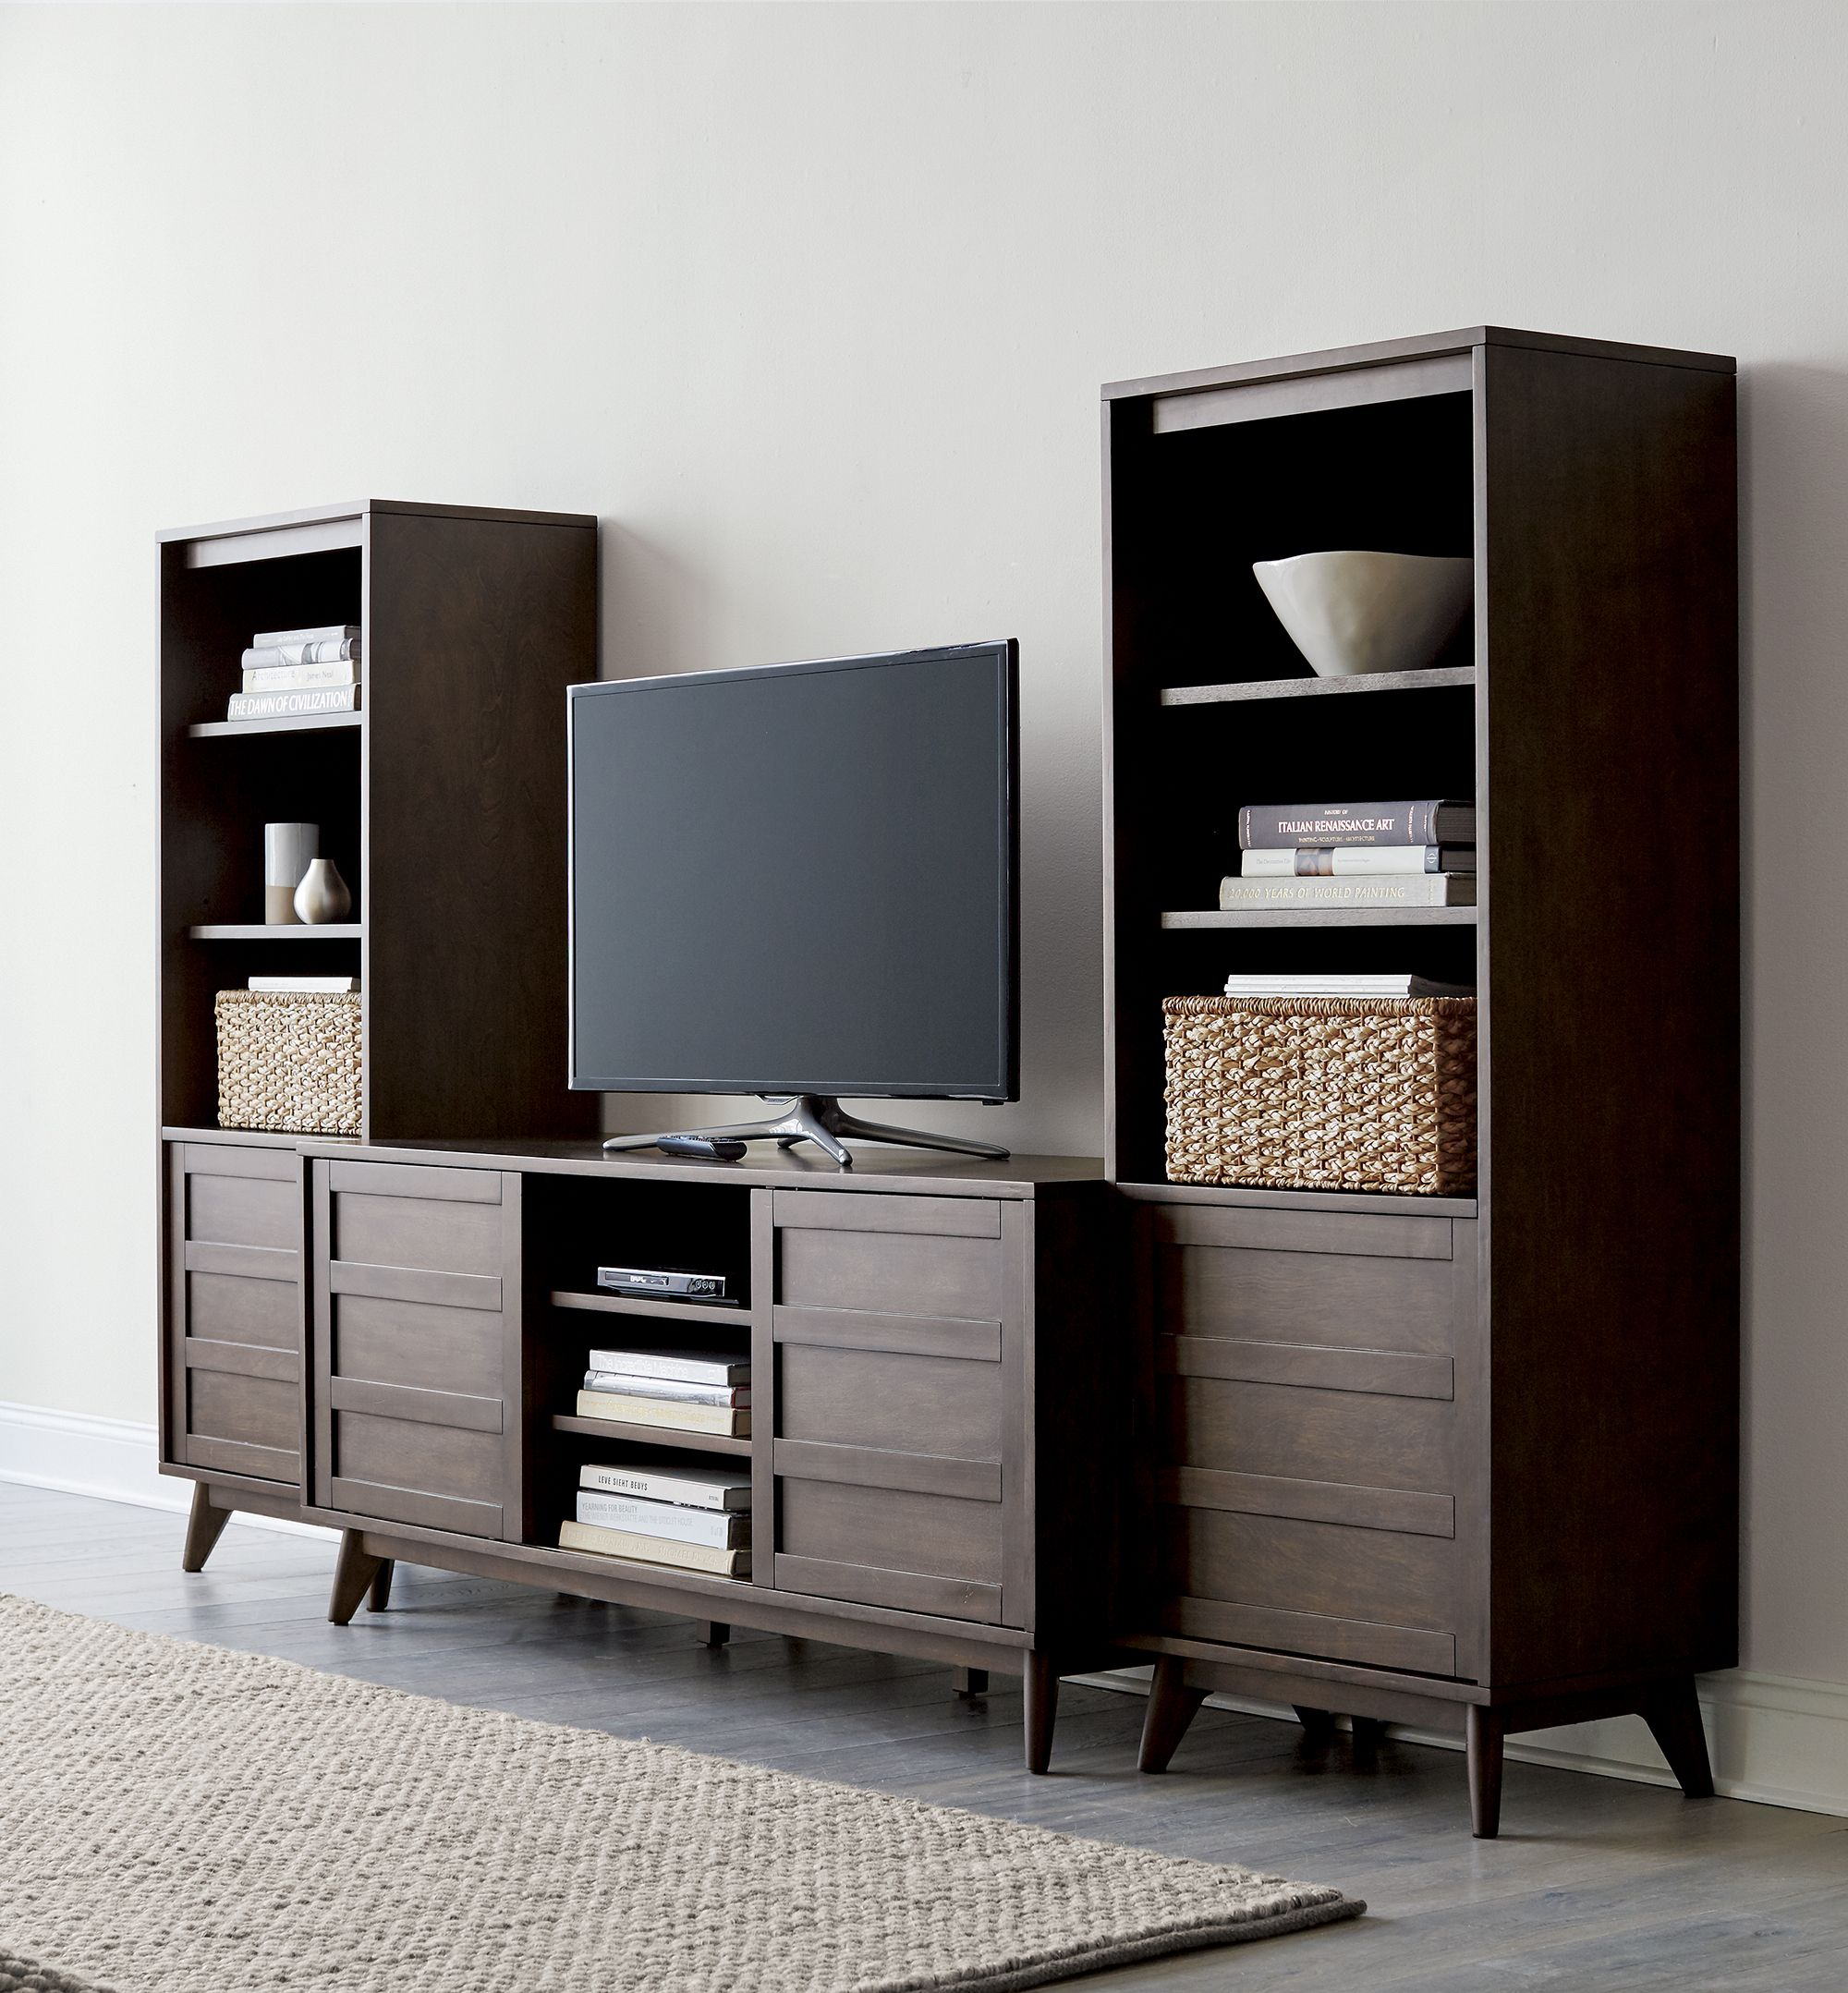 Hd Media Console With Two Towers Media Console Crate Shelves